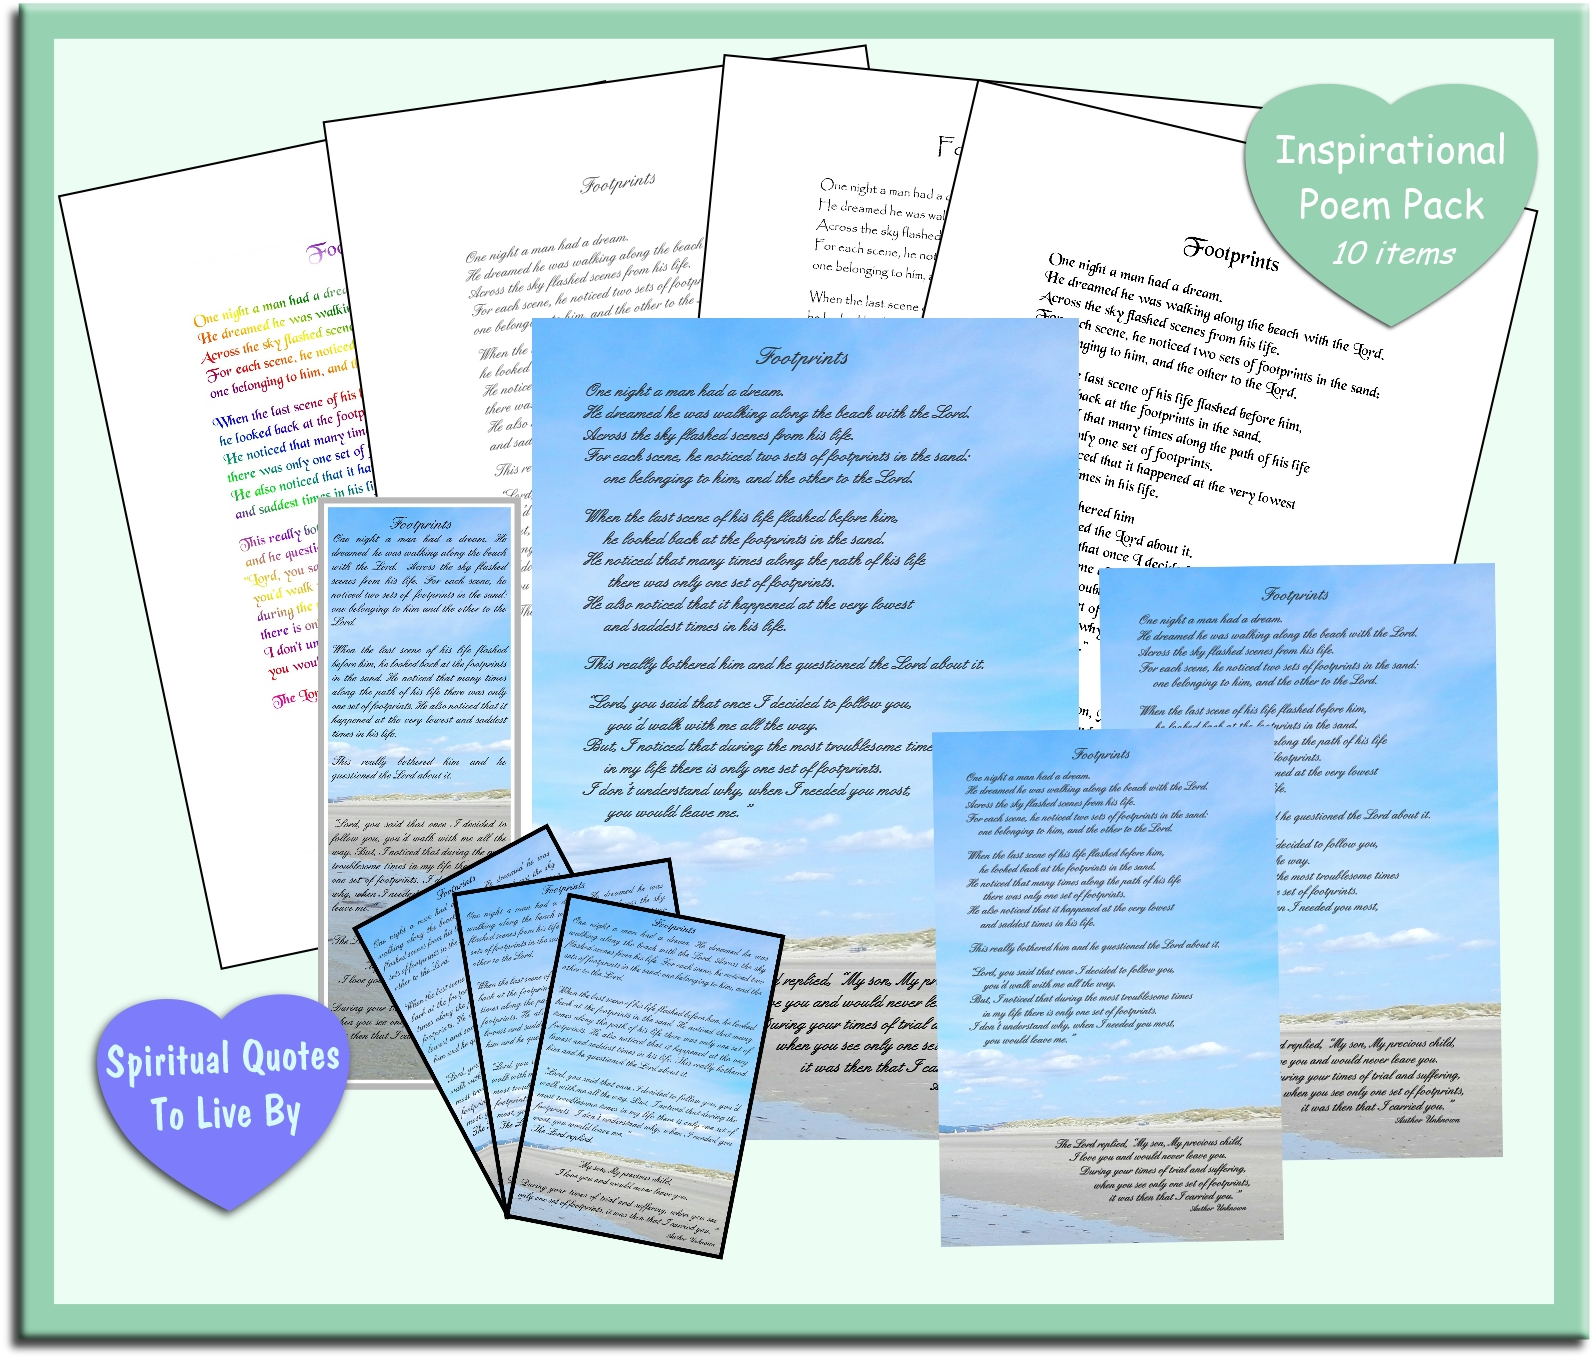 FOOTPRINTS 10 item poem pack - instantly download and print from Spiritual Quotes To Live By on Etsy